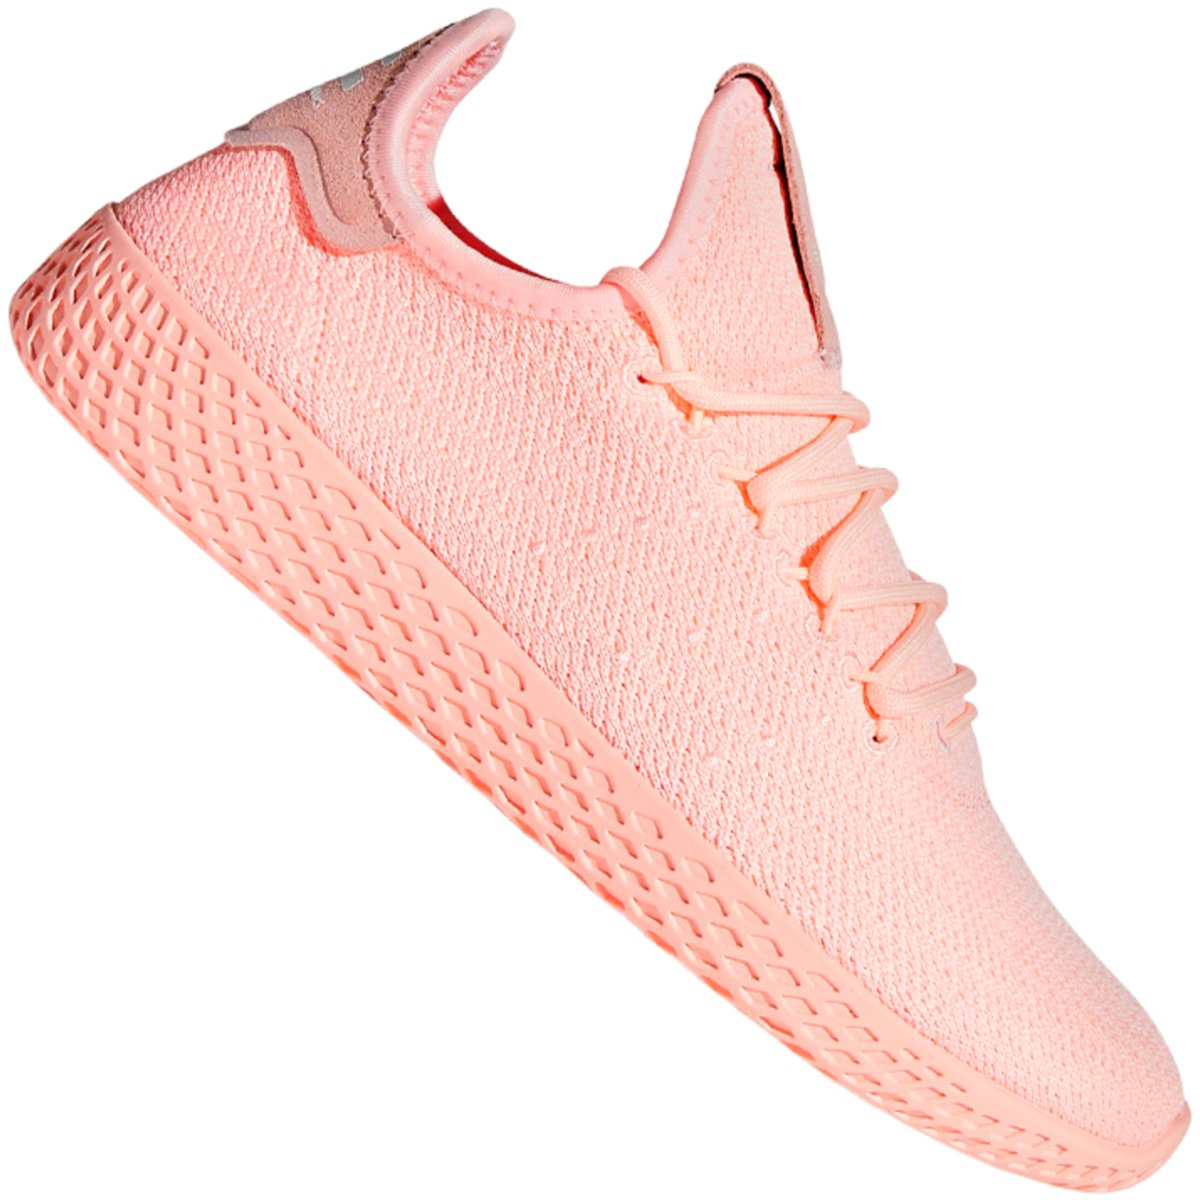 Details zu #S2K adidas Originals Damen Sneaker Pharrell Williams Tennis Hu  D96551 rosa